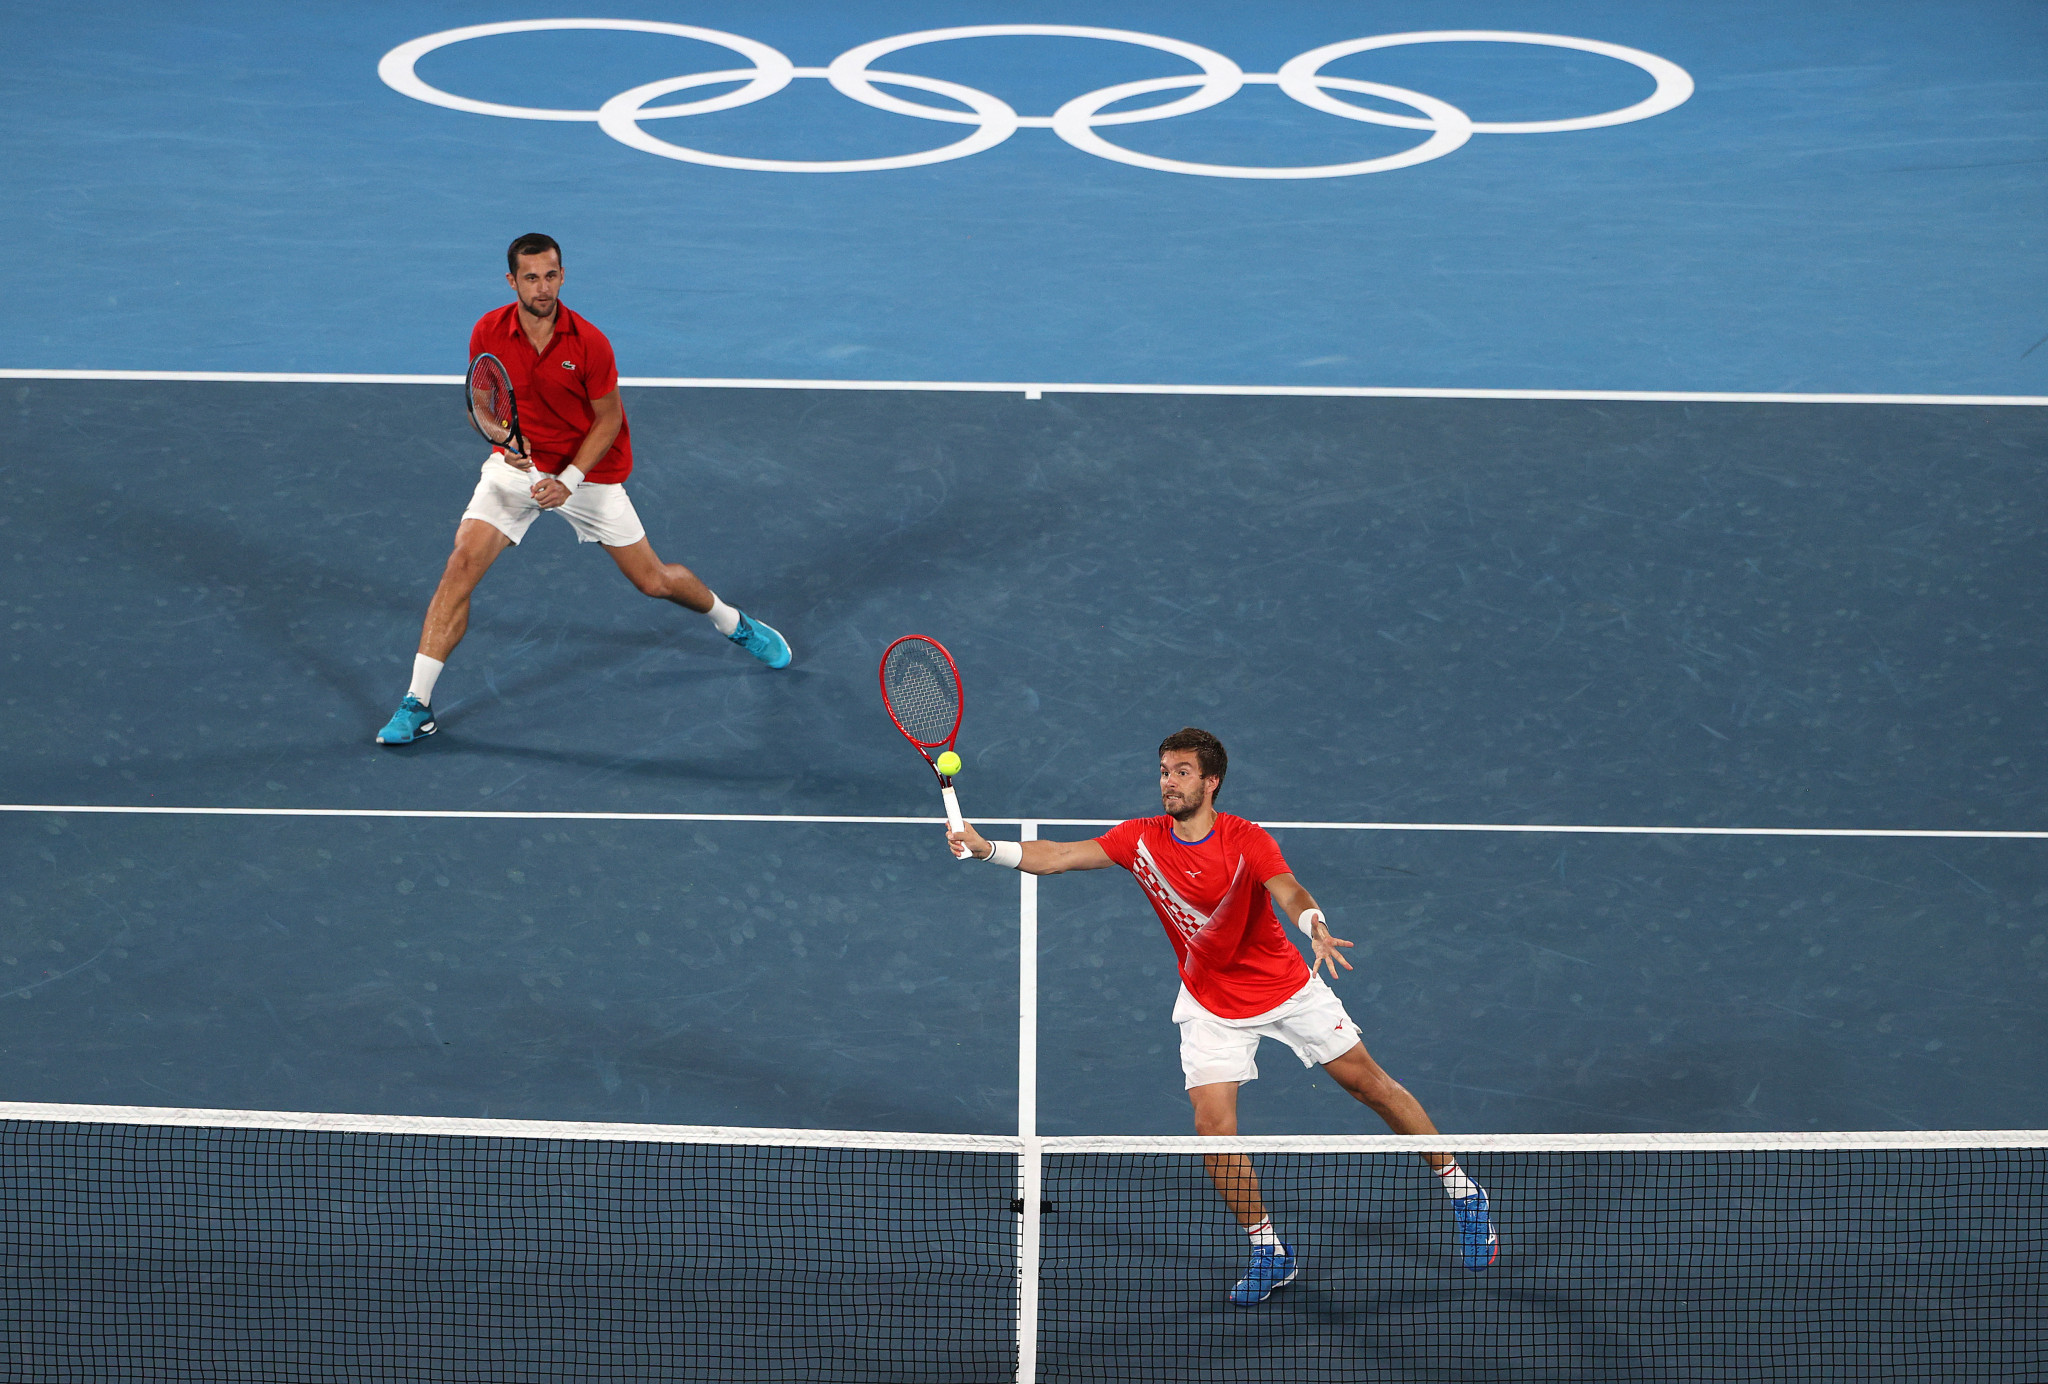 Mektic and Pavic win all-Croatian men's doubles final at Tokyo 2020